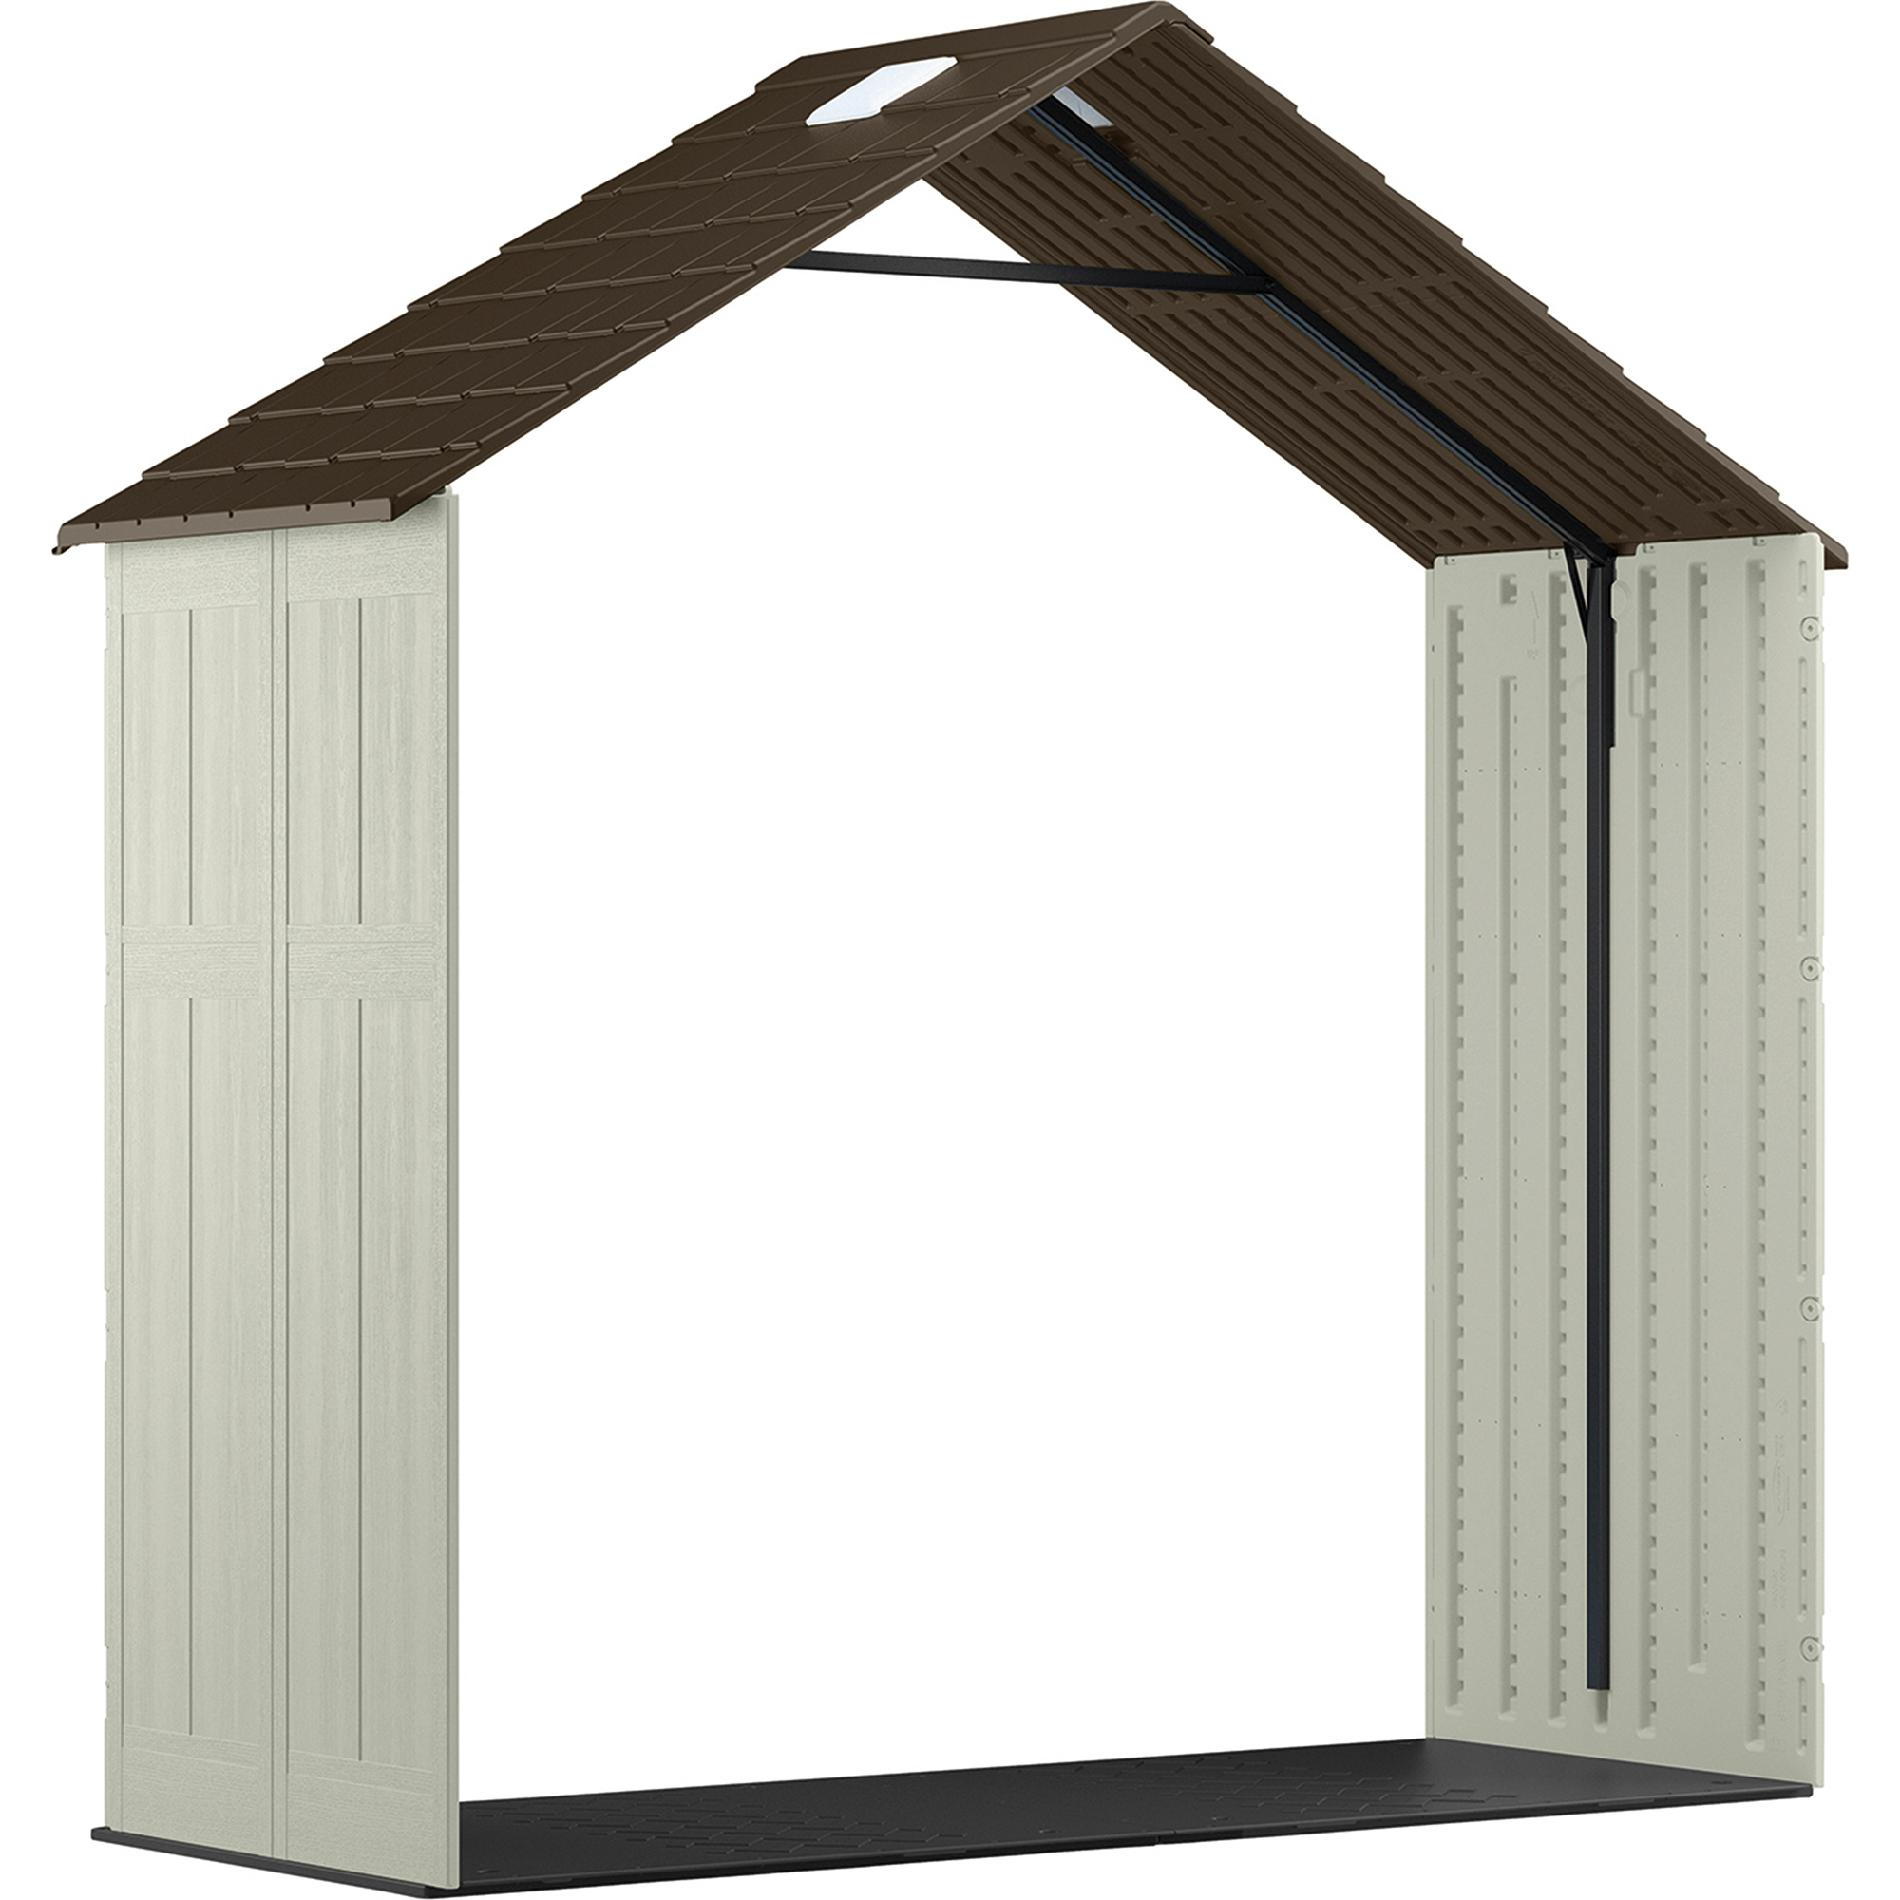 walmart greenhouse shed accessories gardening rubbermaid max sheds and flower outdoor landscaping roughneck big topic around gable vegetables storage